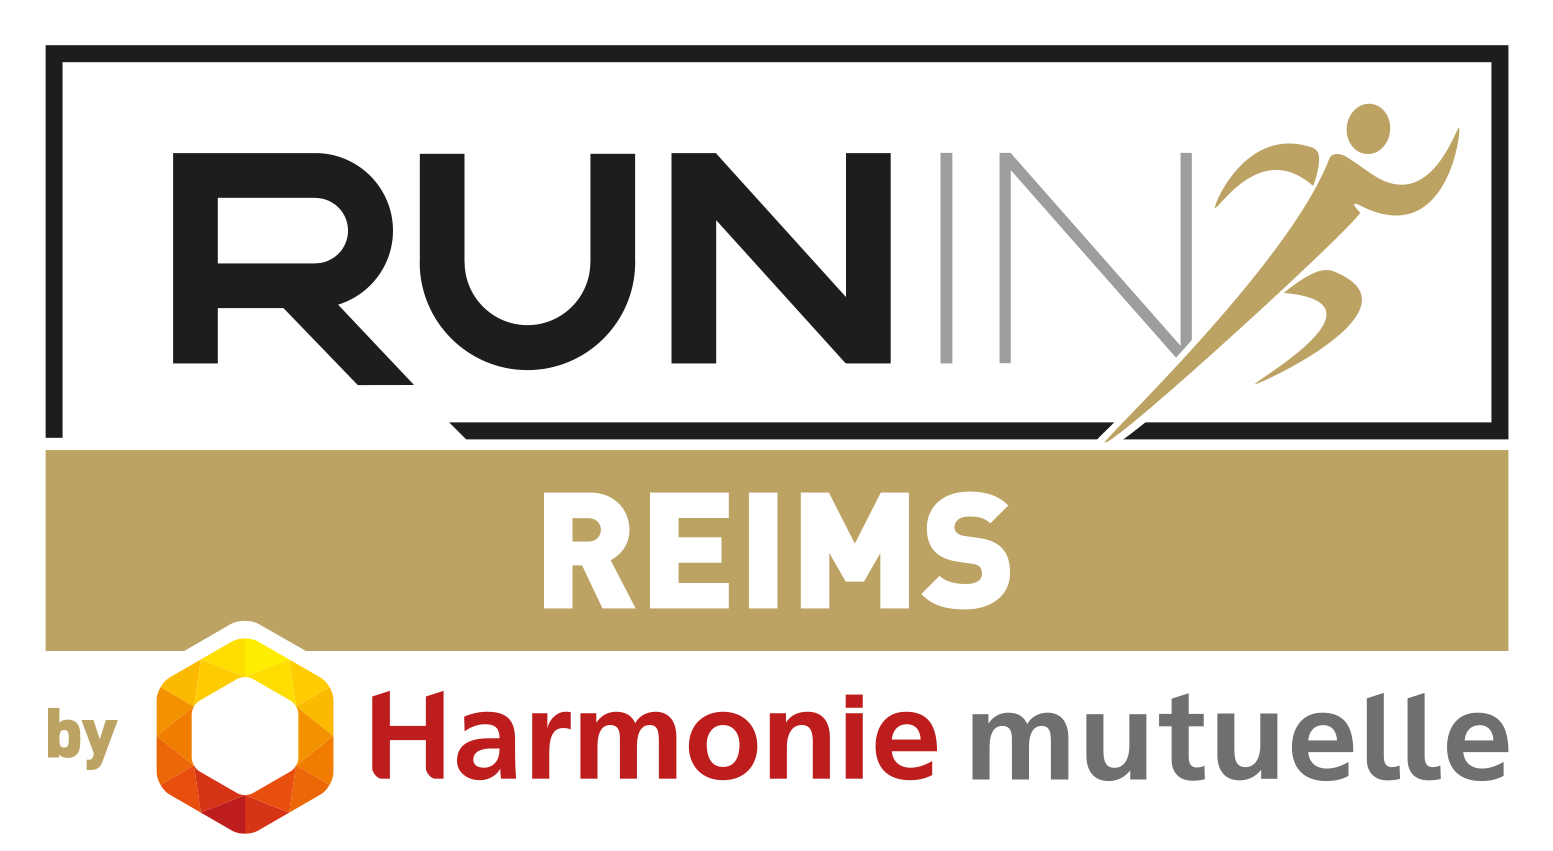 https://www.timeto.com/sports/running/run-in-reims-by-harmonie-mutuelle-2019